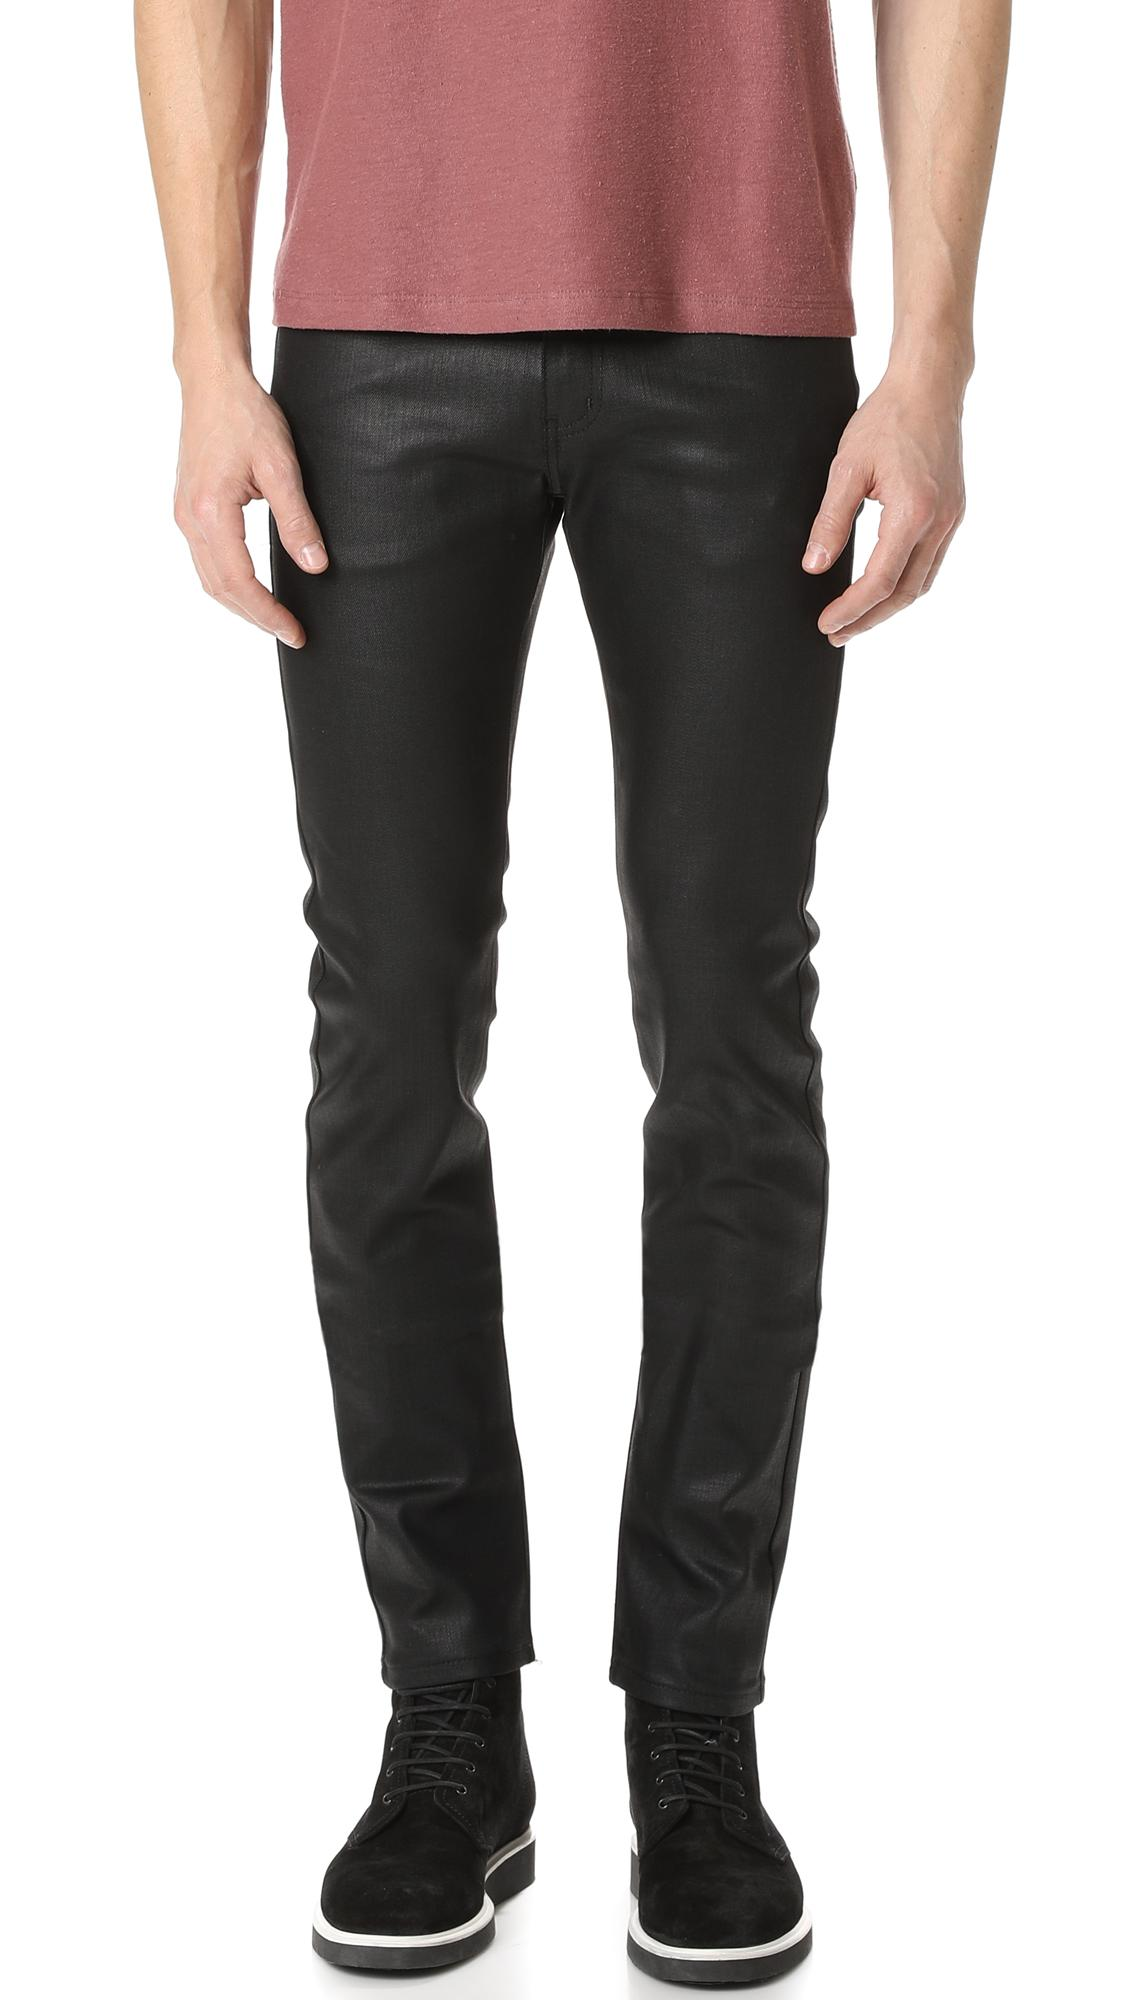 Discover men's jeans from ASOS. Hundreds of different jean styles, including biker jeans, straight leg jeans, acid wash jeans, bootcut and colored allshop-eqe0tr01.cf today at ASOS. ASOS DESIGN 'Stefan' skinny jeans in black vinyl with zip hem. $ ASOS DESIGN skinny jeans in black with knee rips. $ ASOS DESIGN skinny jeans in indigo.